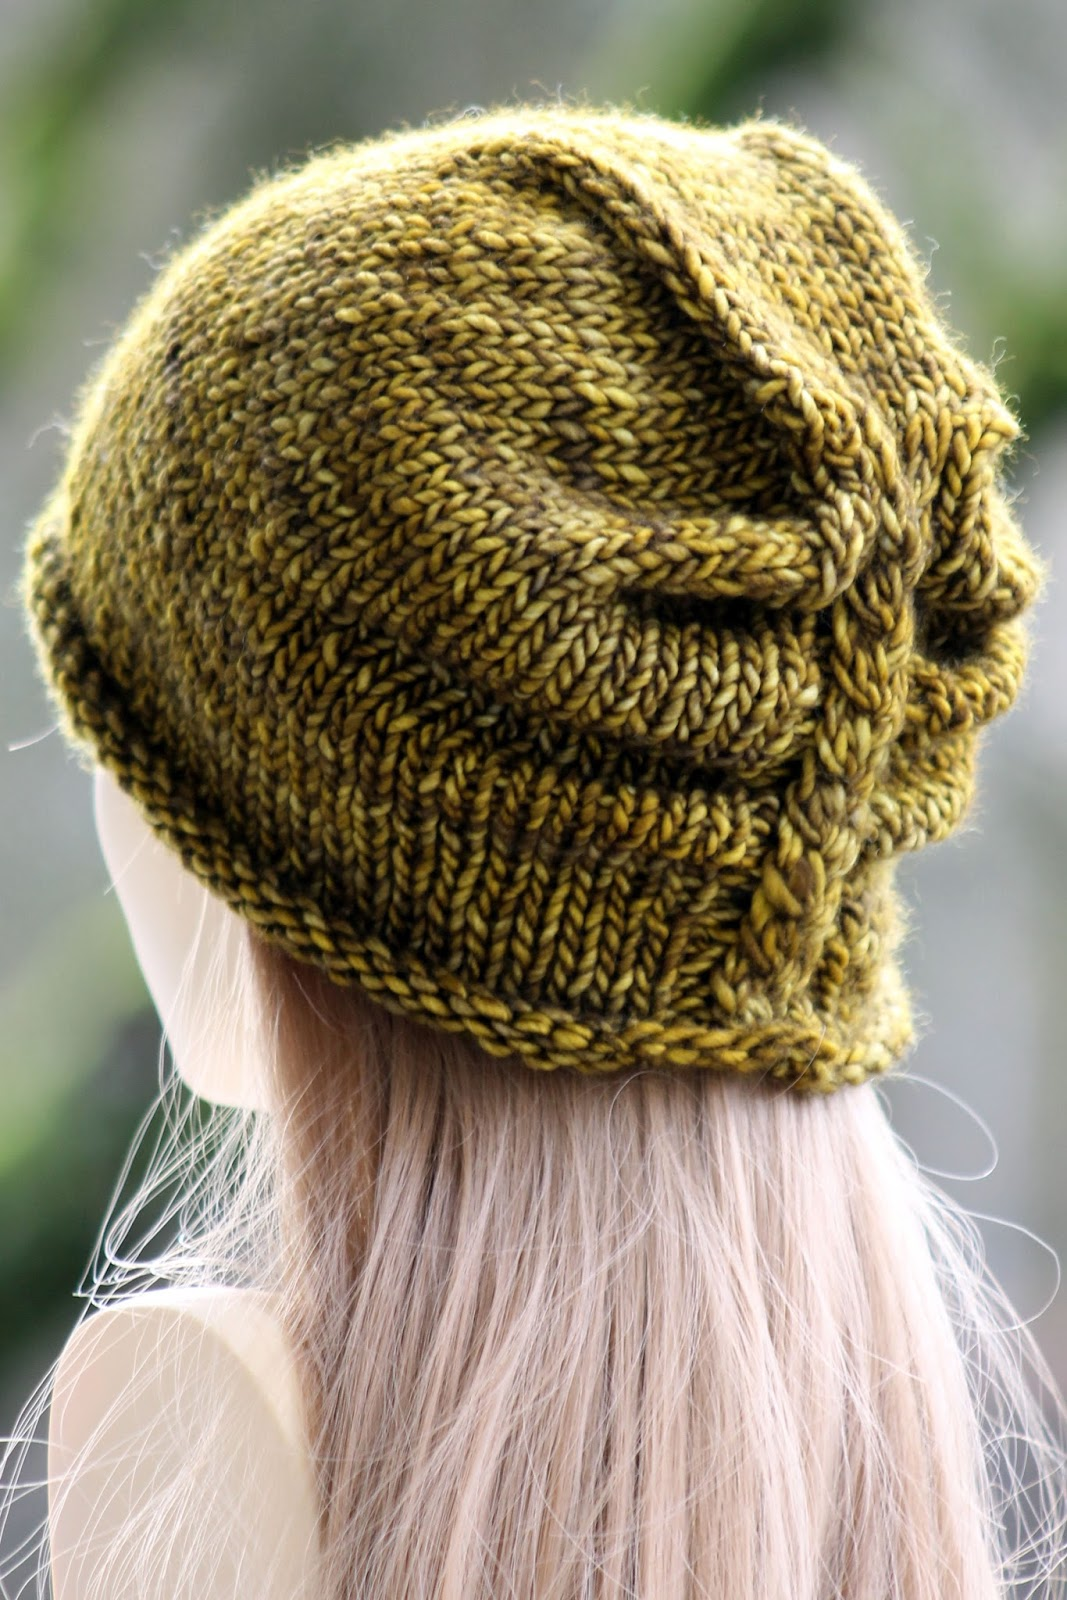 Free Hat Knitting Pattern For 2 Year Old : Knitting & crochet inspirations on Pinterest Cowls, Free ...